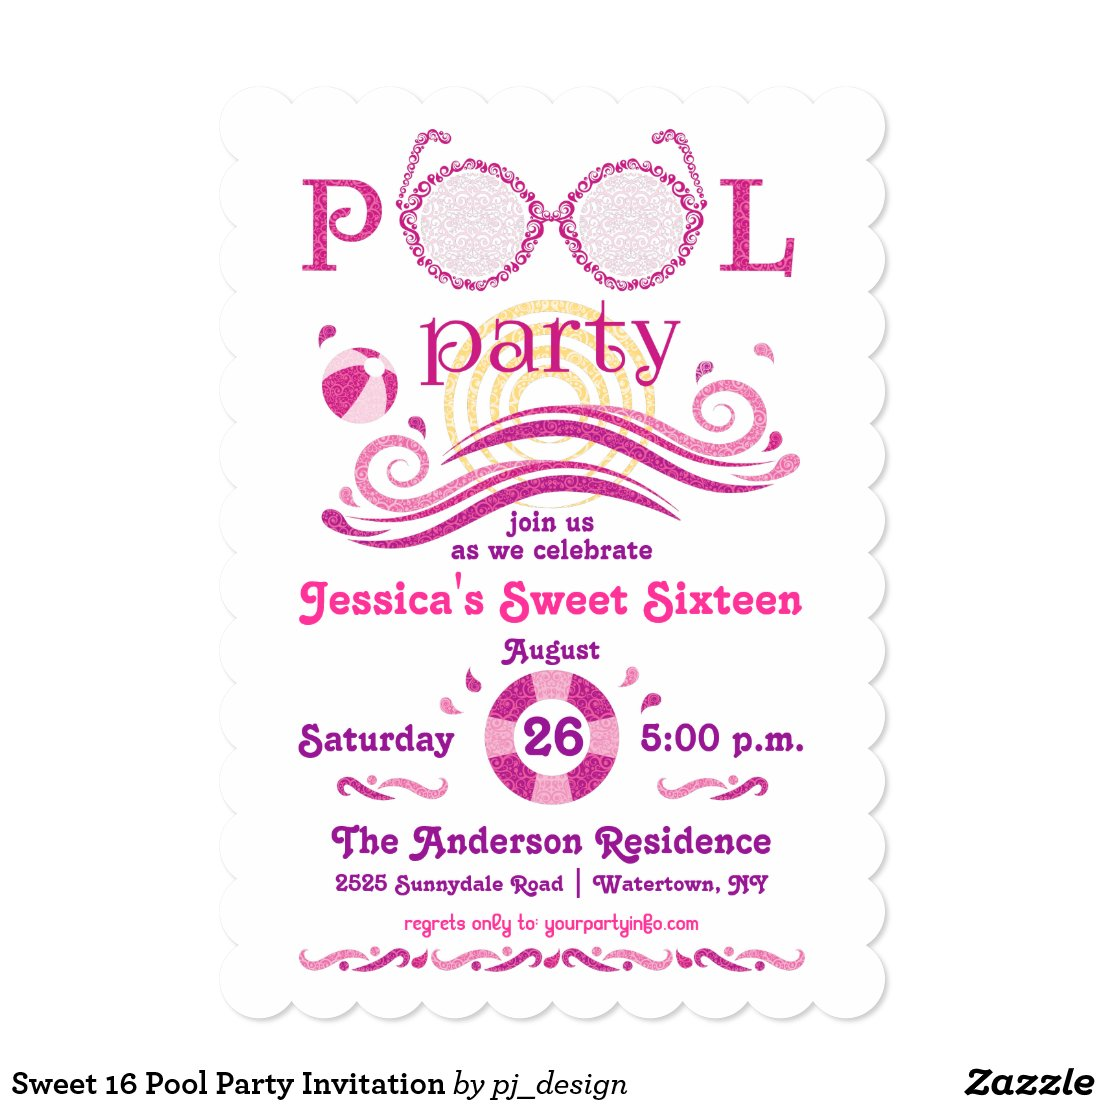 Sweet 16 Pool Party Invitation